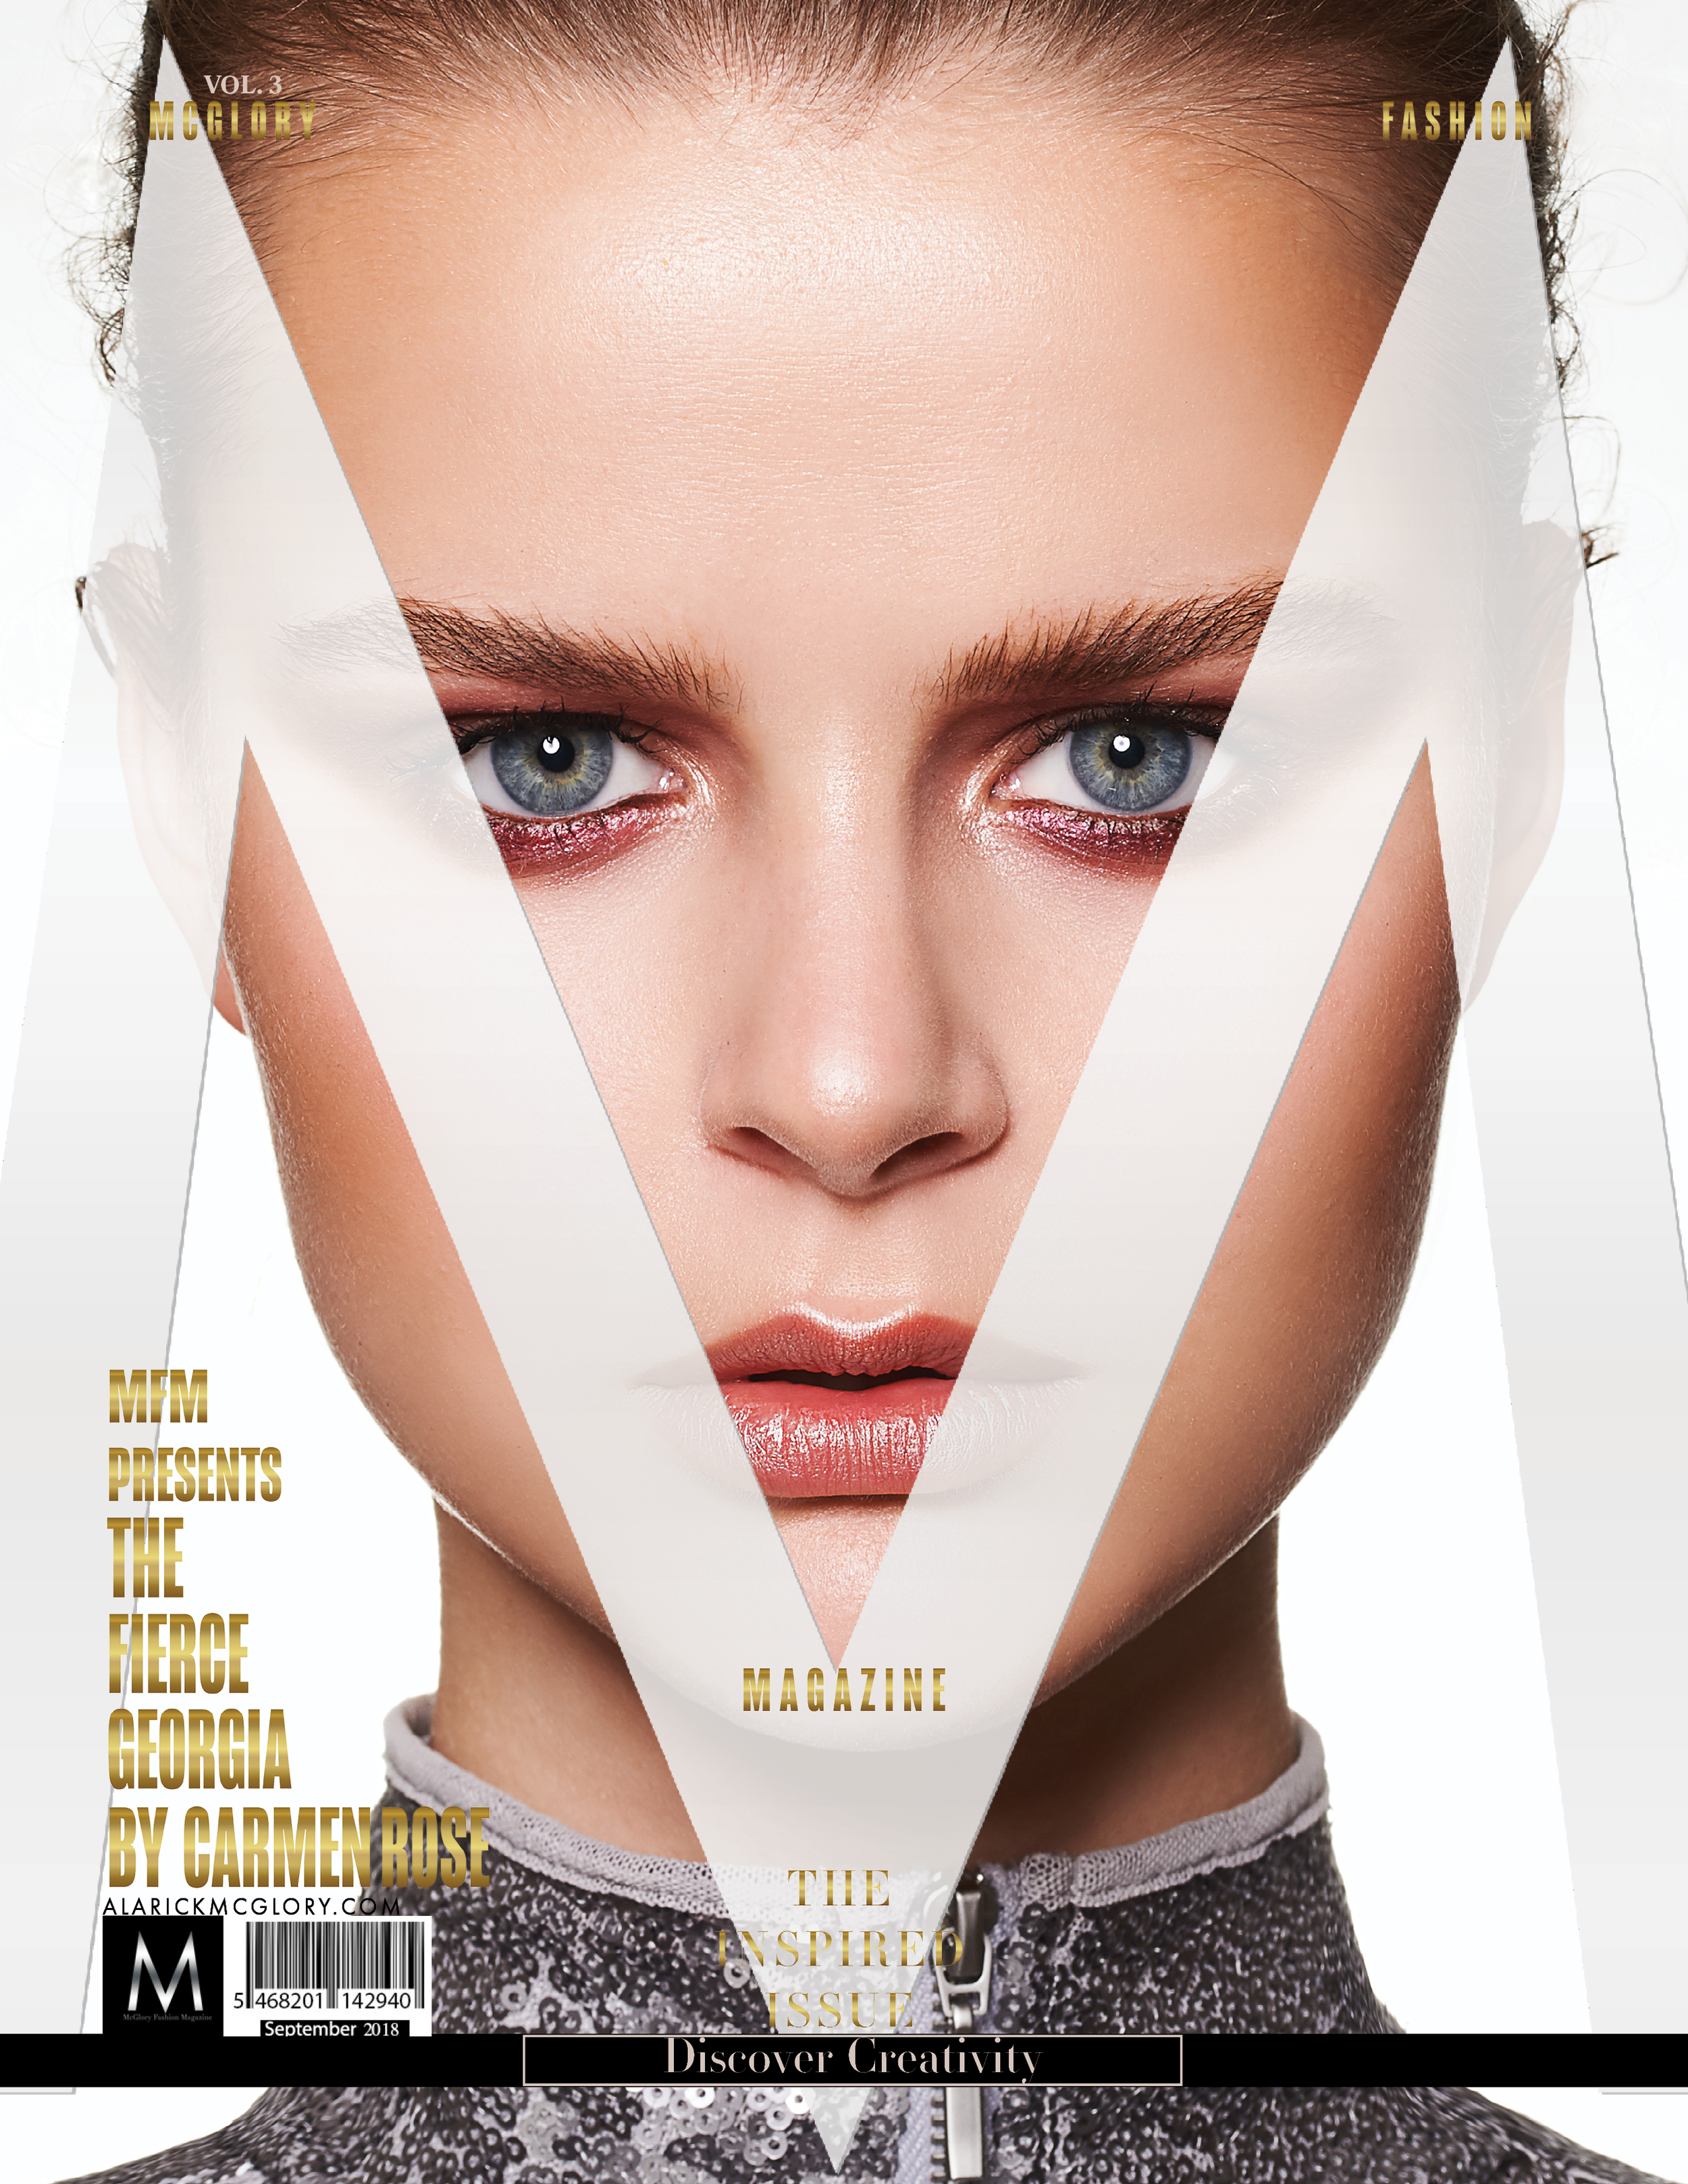 MFM first issue 6-edited 106 Part 1 space 3-3-3-3 PDF VOL 3 NEW NEW print 3.png